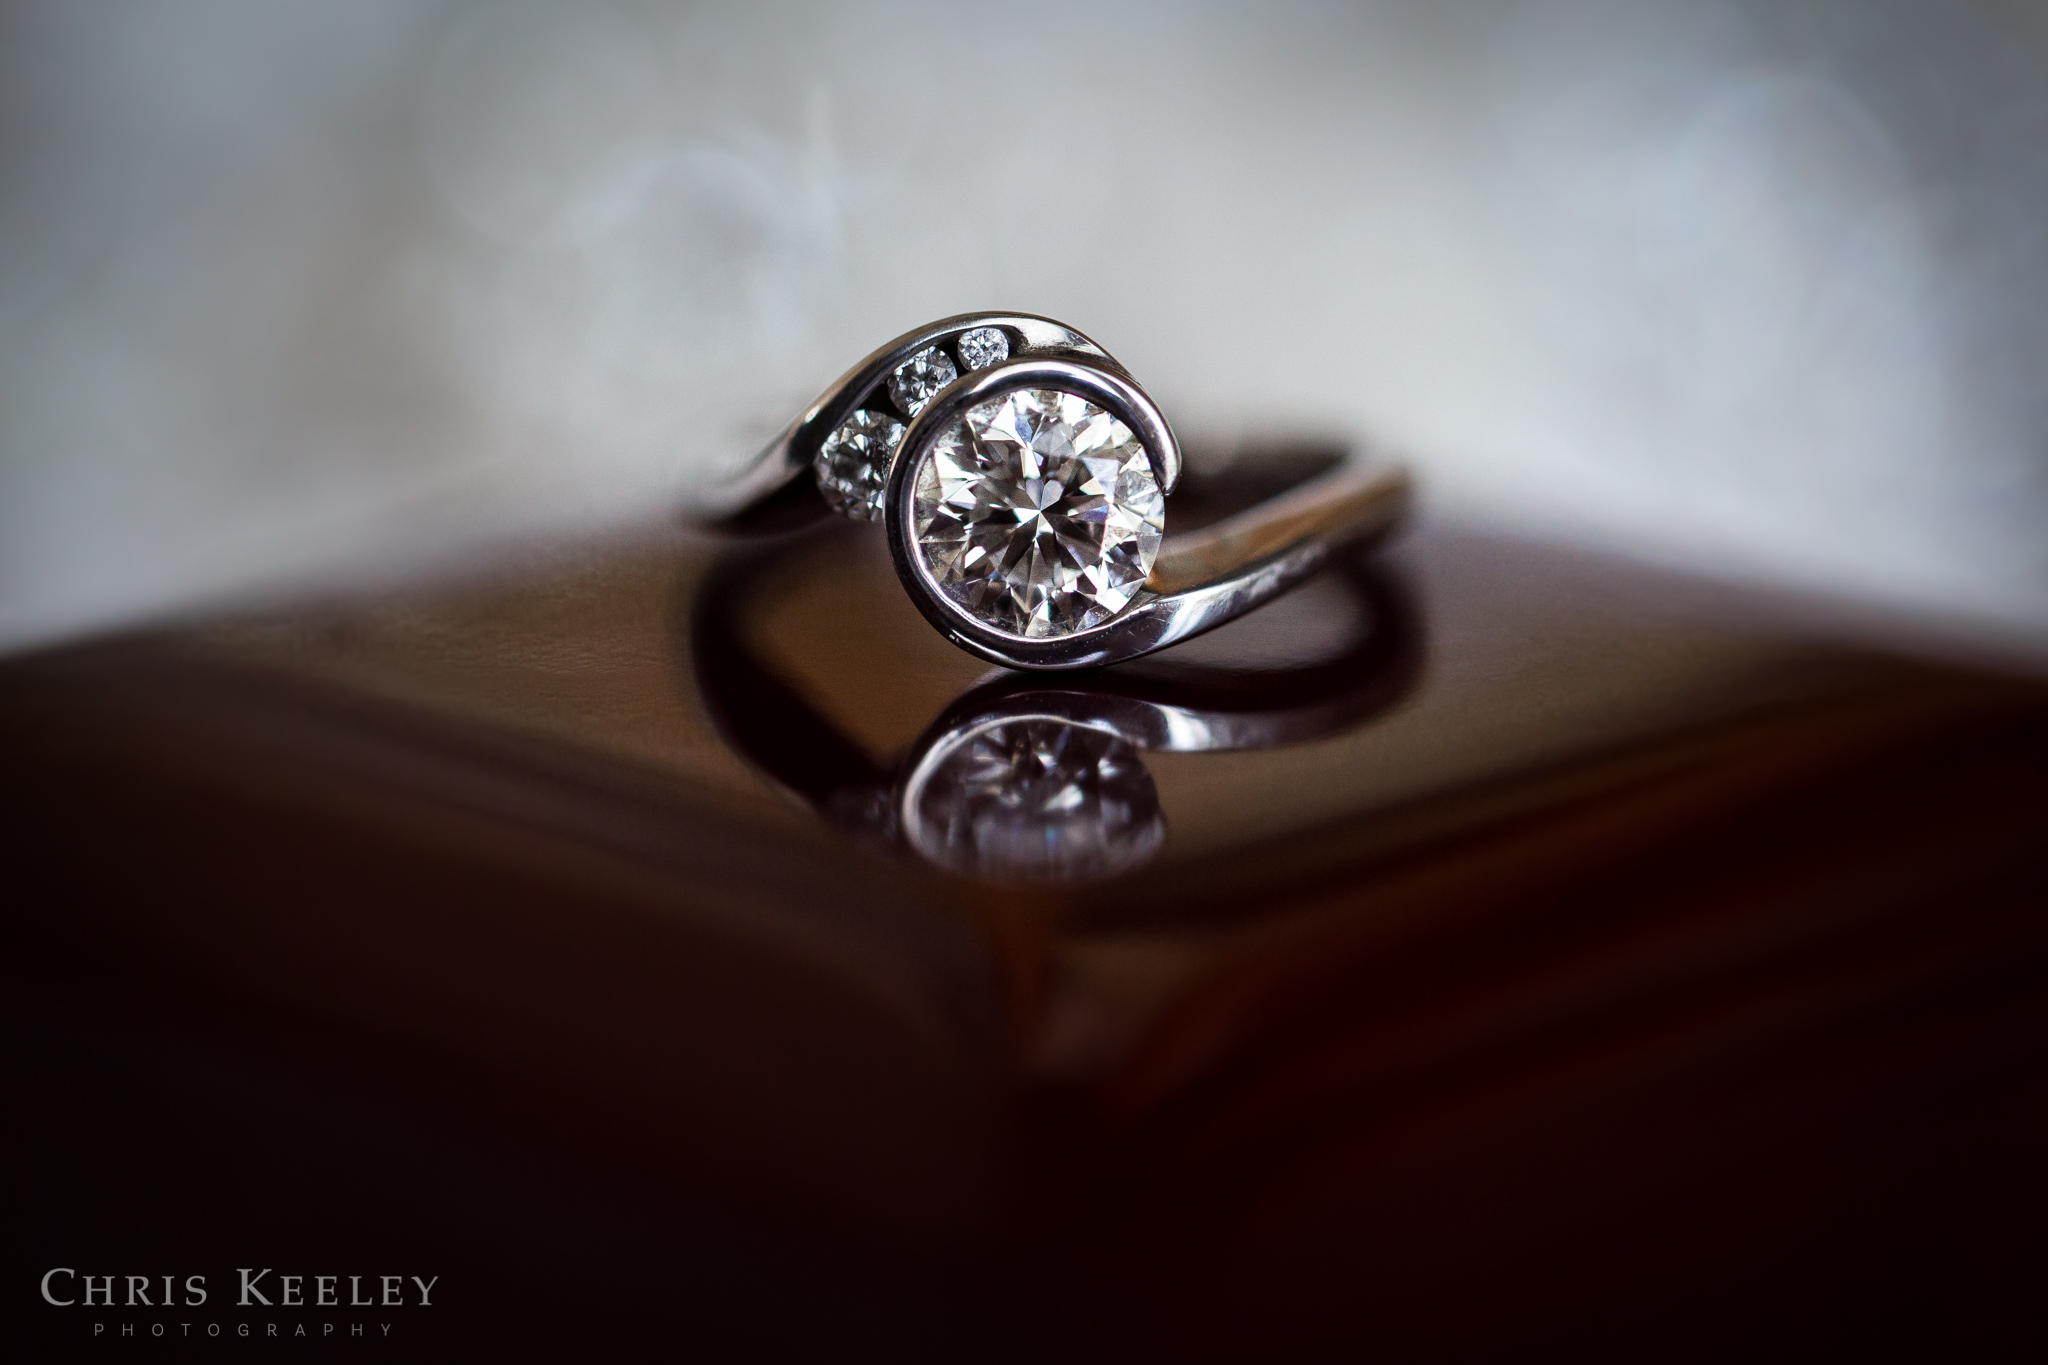 This is the ring my now-wife wears. I knew it was the one the instant that I saw it. Thank you, Deb, couldn't have found it without your help.